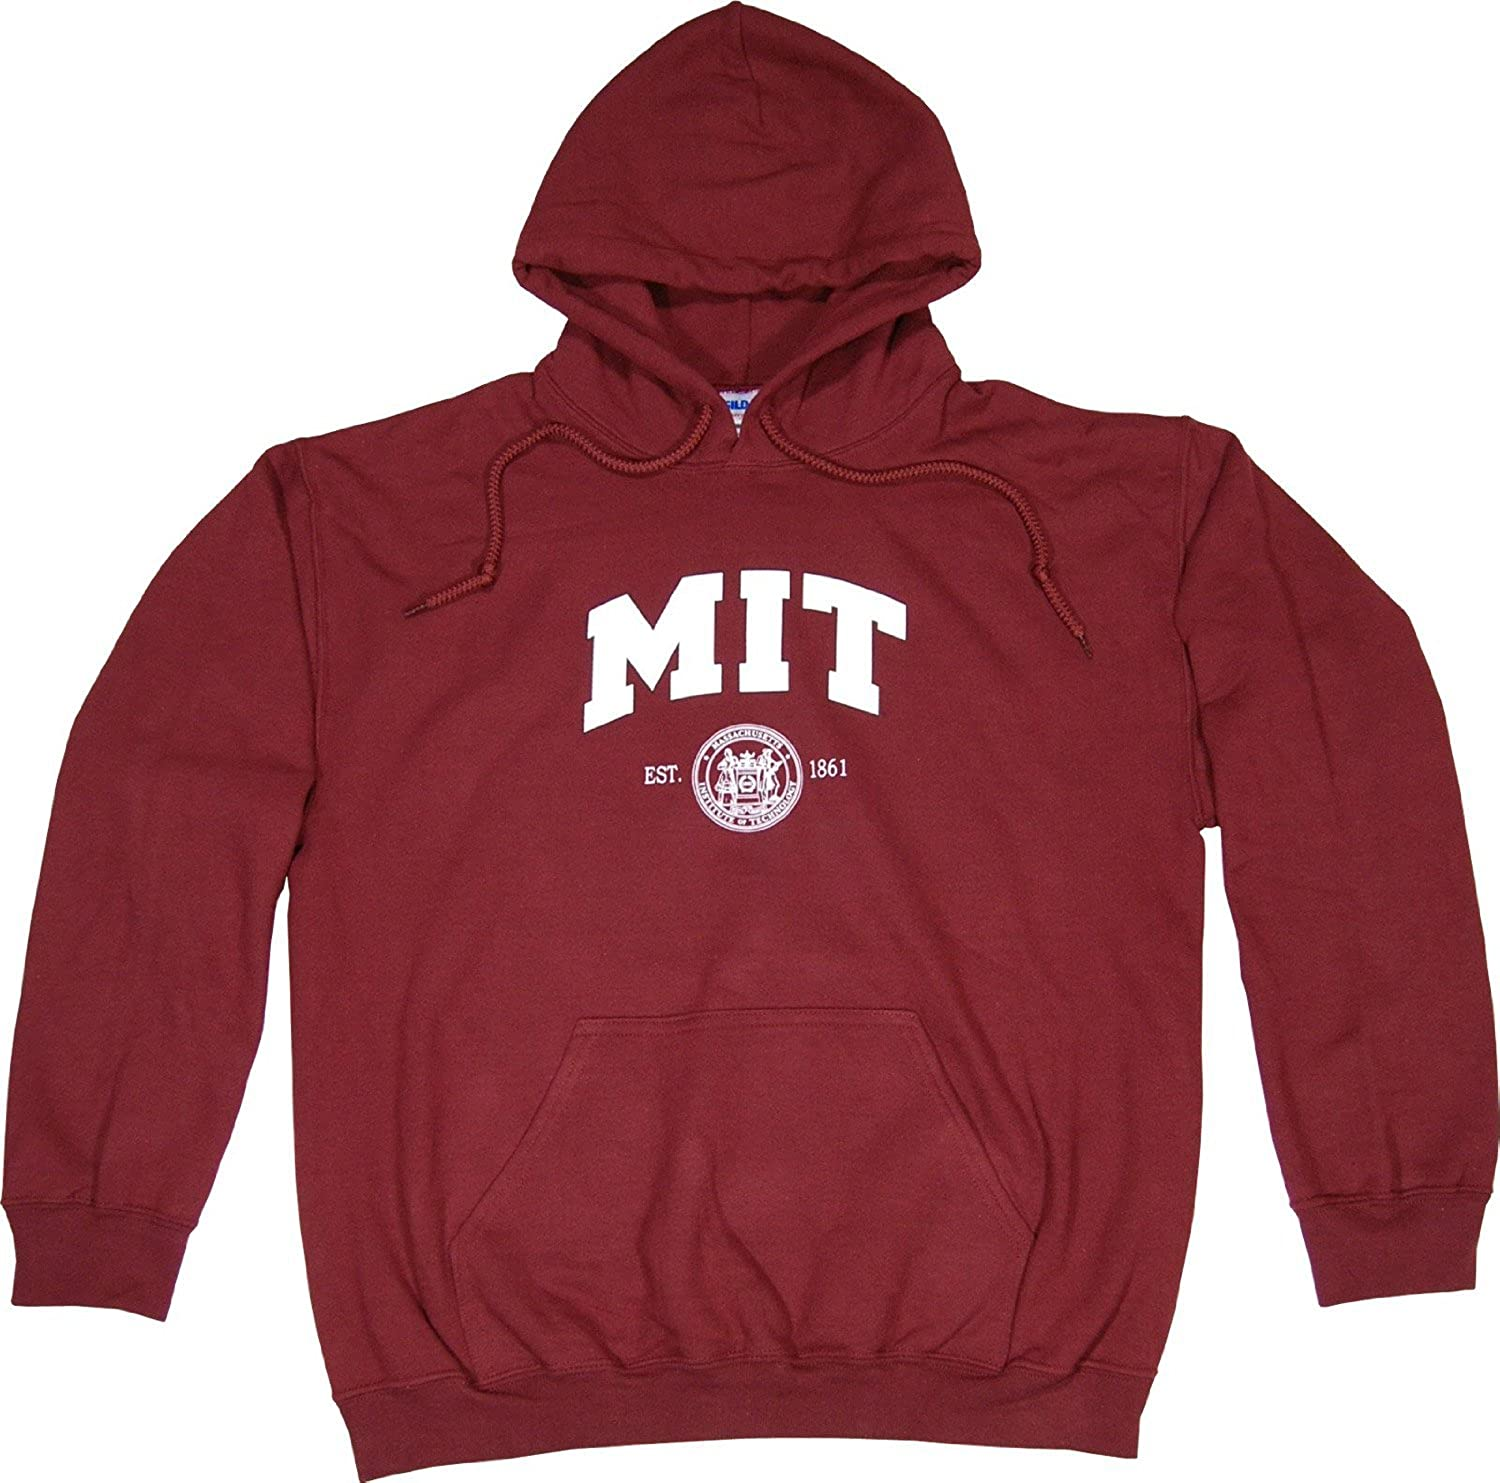 Amazon.com: New York Fashion Police MIT Hoodie - Massachusetts Institute Of Technology Hooded Sweatshirt: Clothing